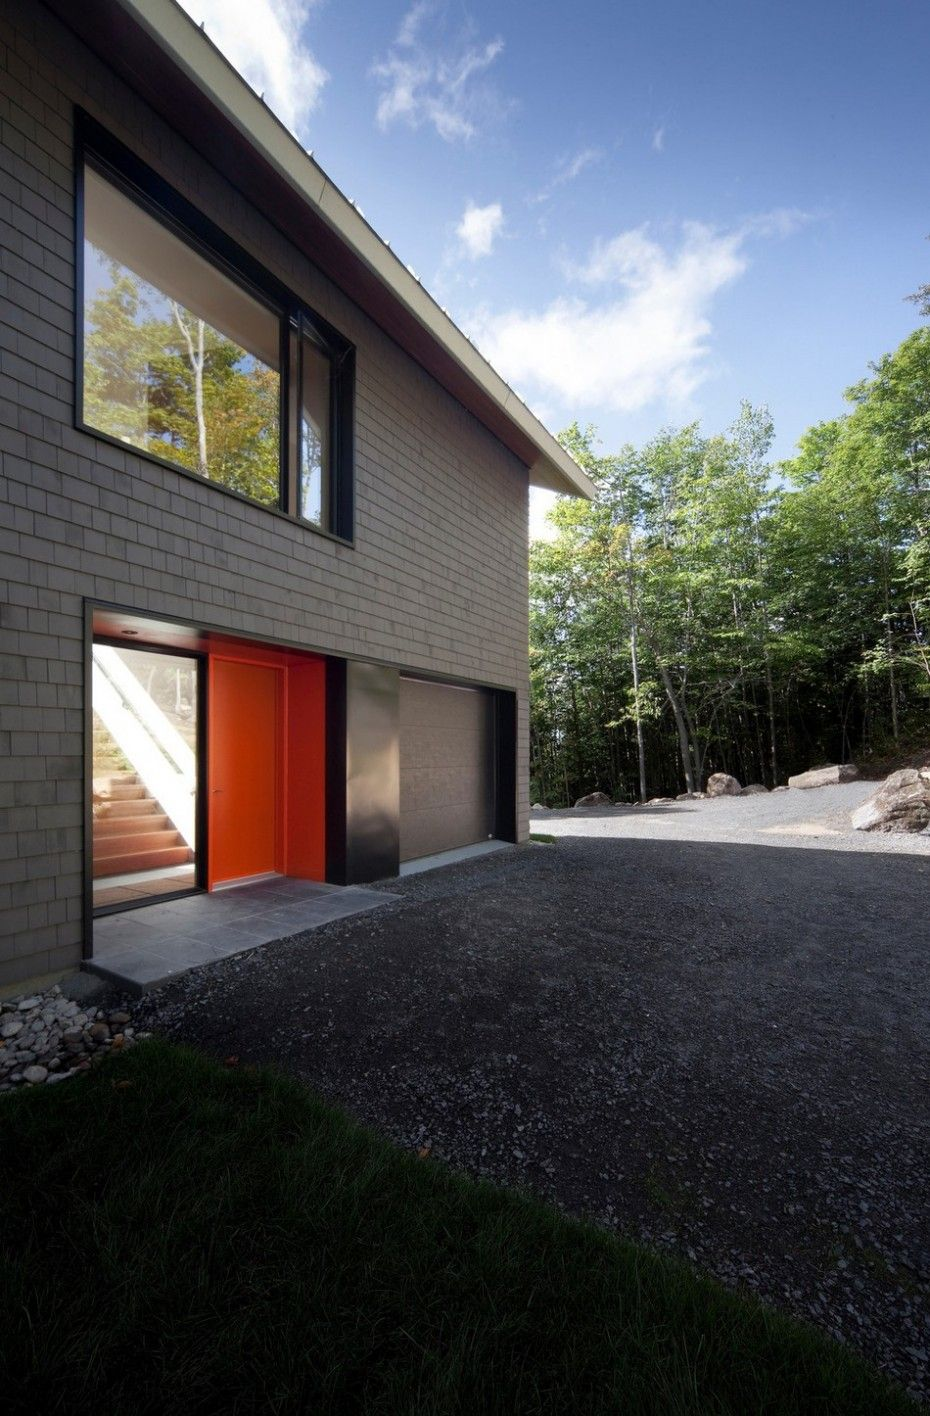 A Remodeled Traditional Cottage With Contemporary Style and Natural Surrounding : Design Modern Residence Facade With Orange Door And Glass Window With Black Frame And White Brick Wall